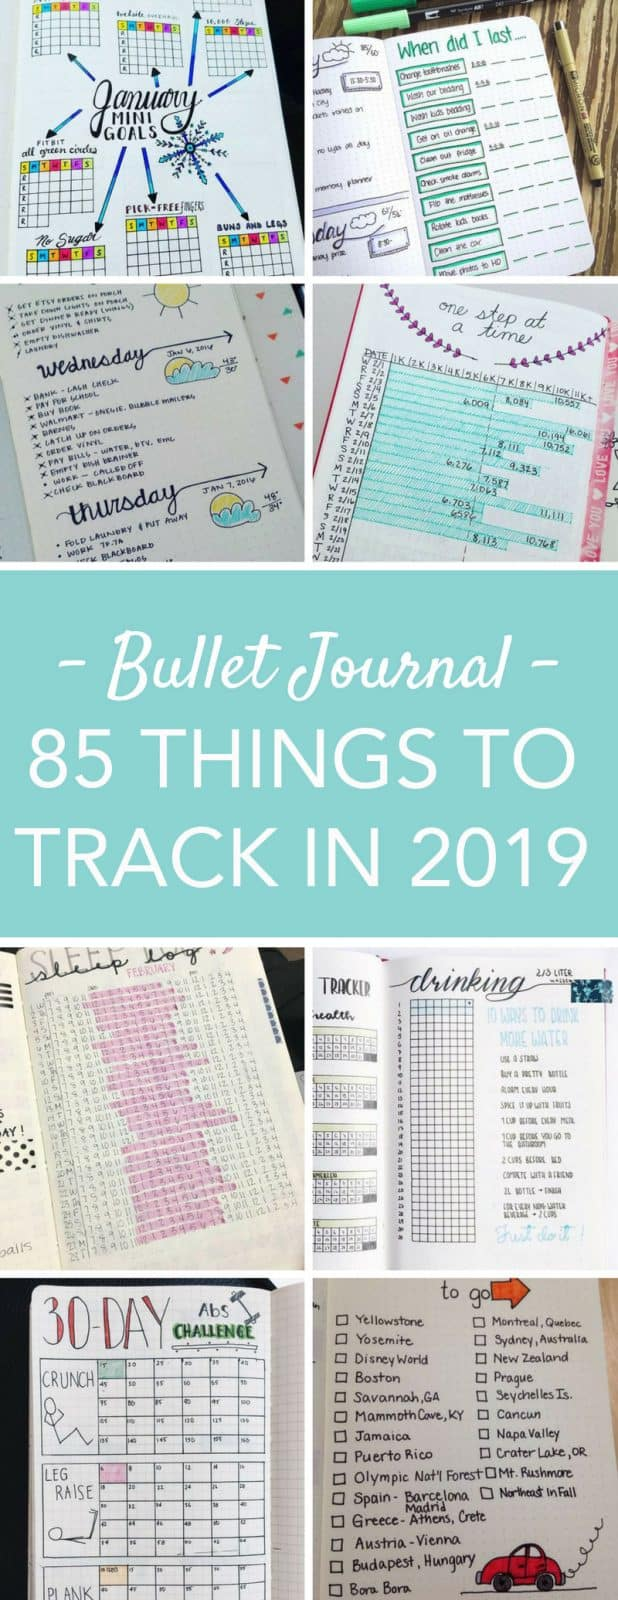 bullet journal tracker ideas 2019 the ultimate list of layouts. Black Bedroom Furniture Sets. Home Design Ideas